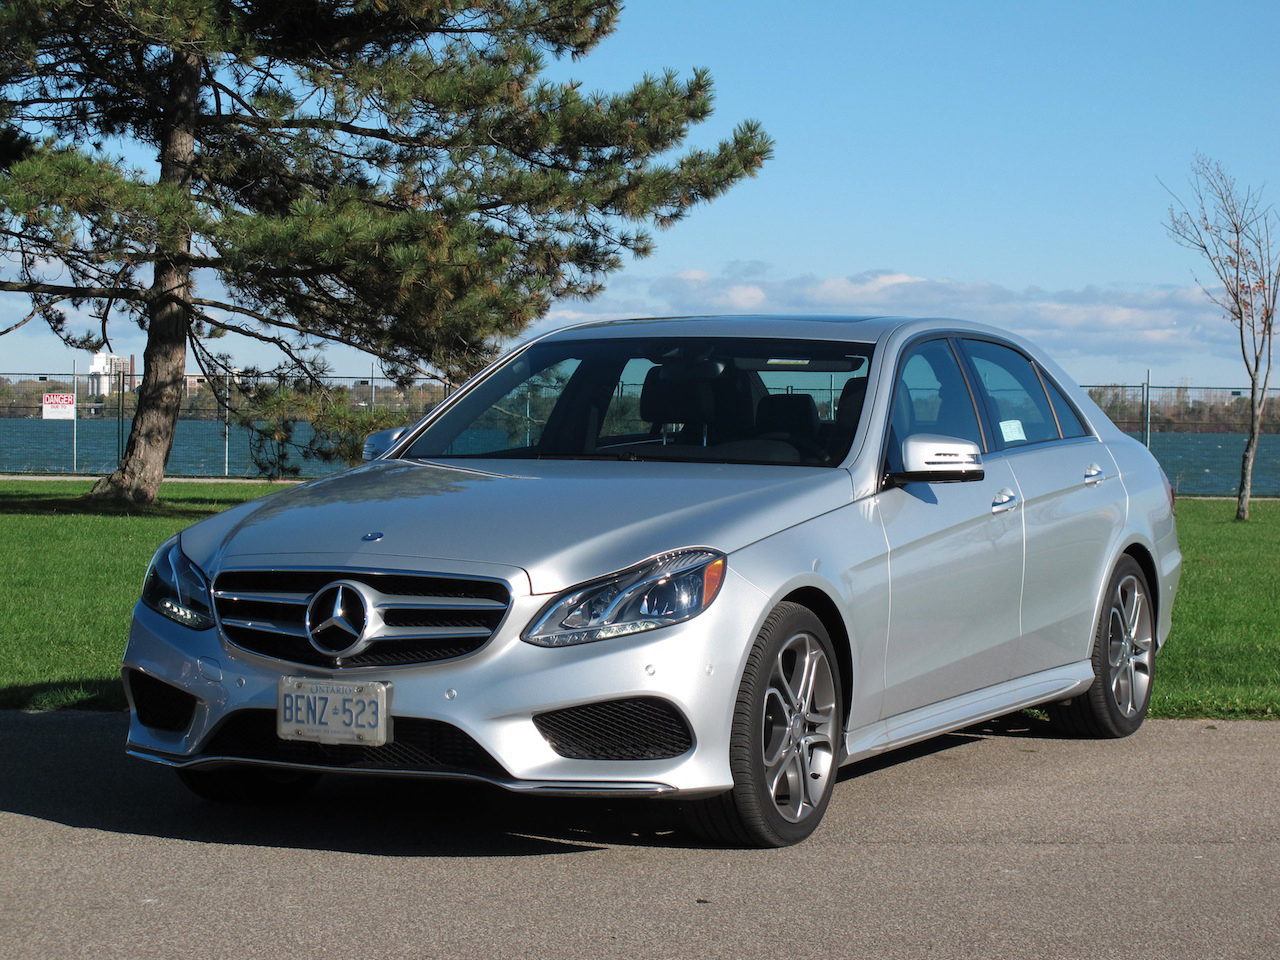 2014 mercedes benz e250 bluetec review cars photos for 2014 mercedes benz e class e250 bluetec sedan review